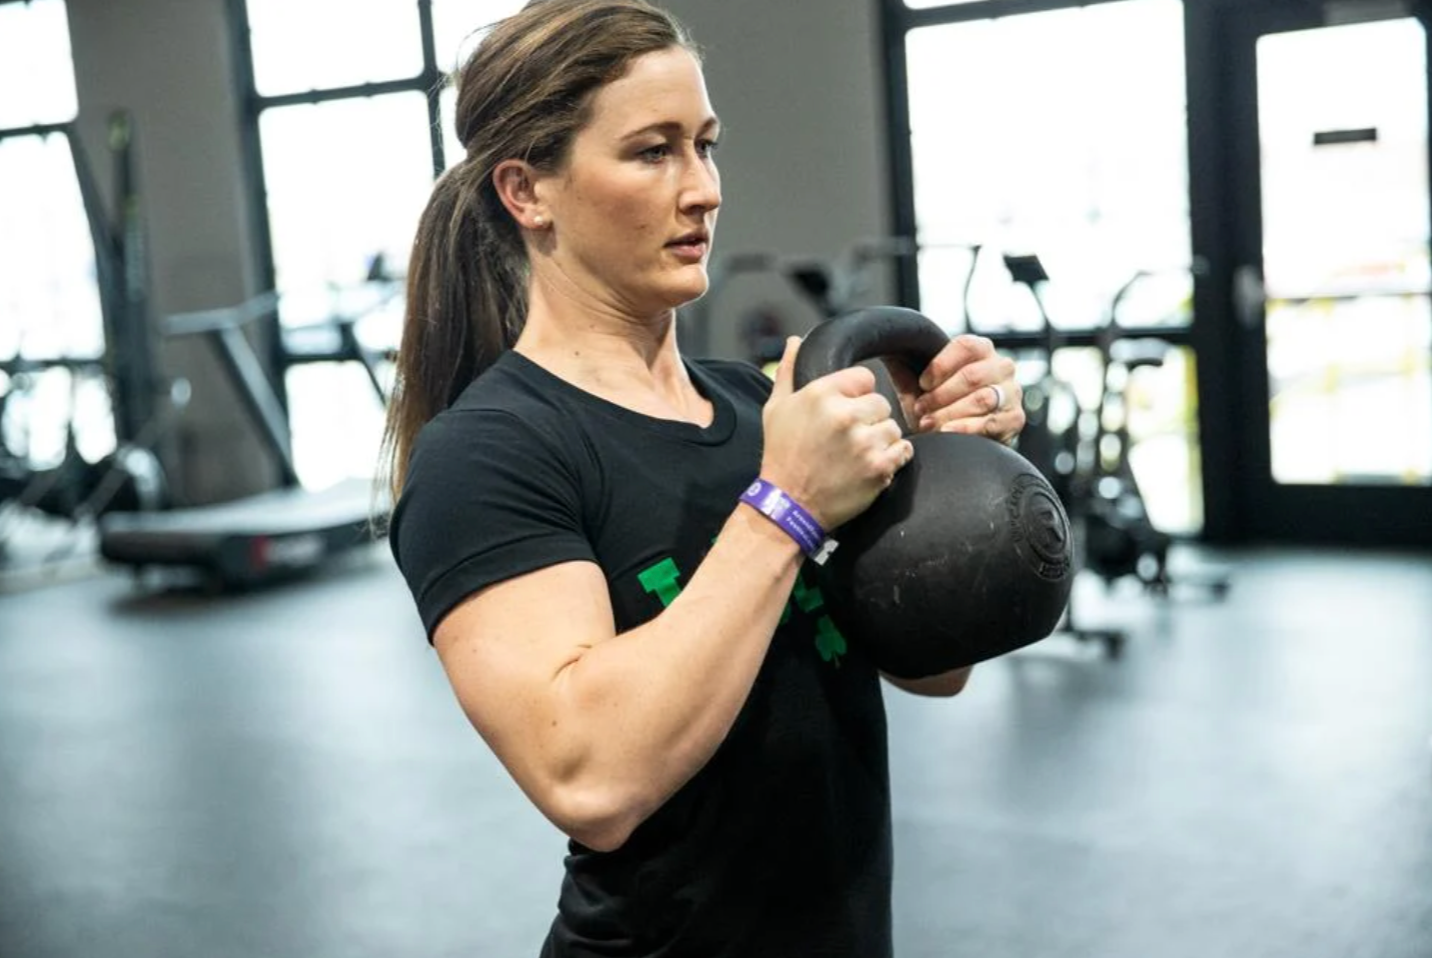 Young woman lifting a kettlebell